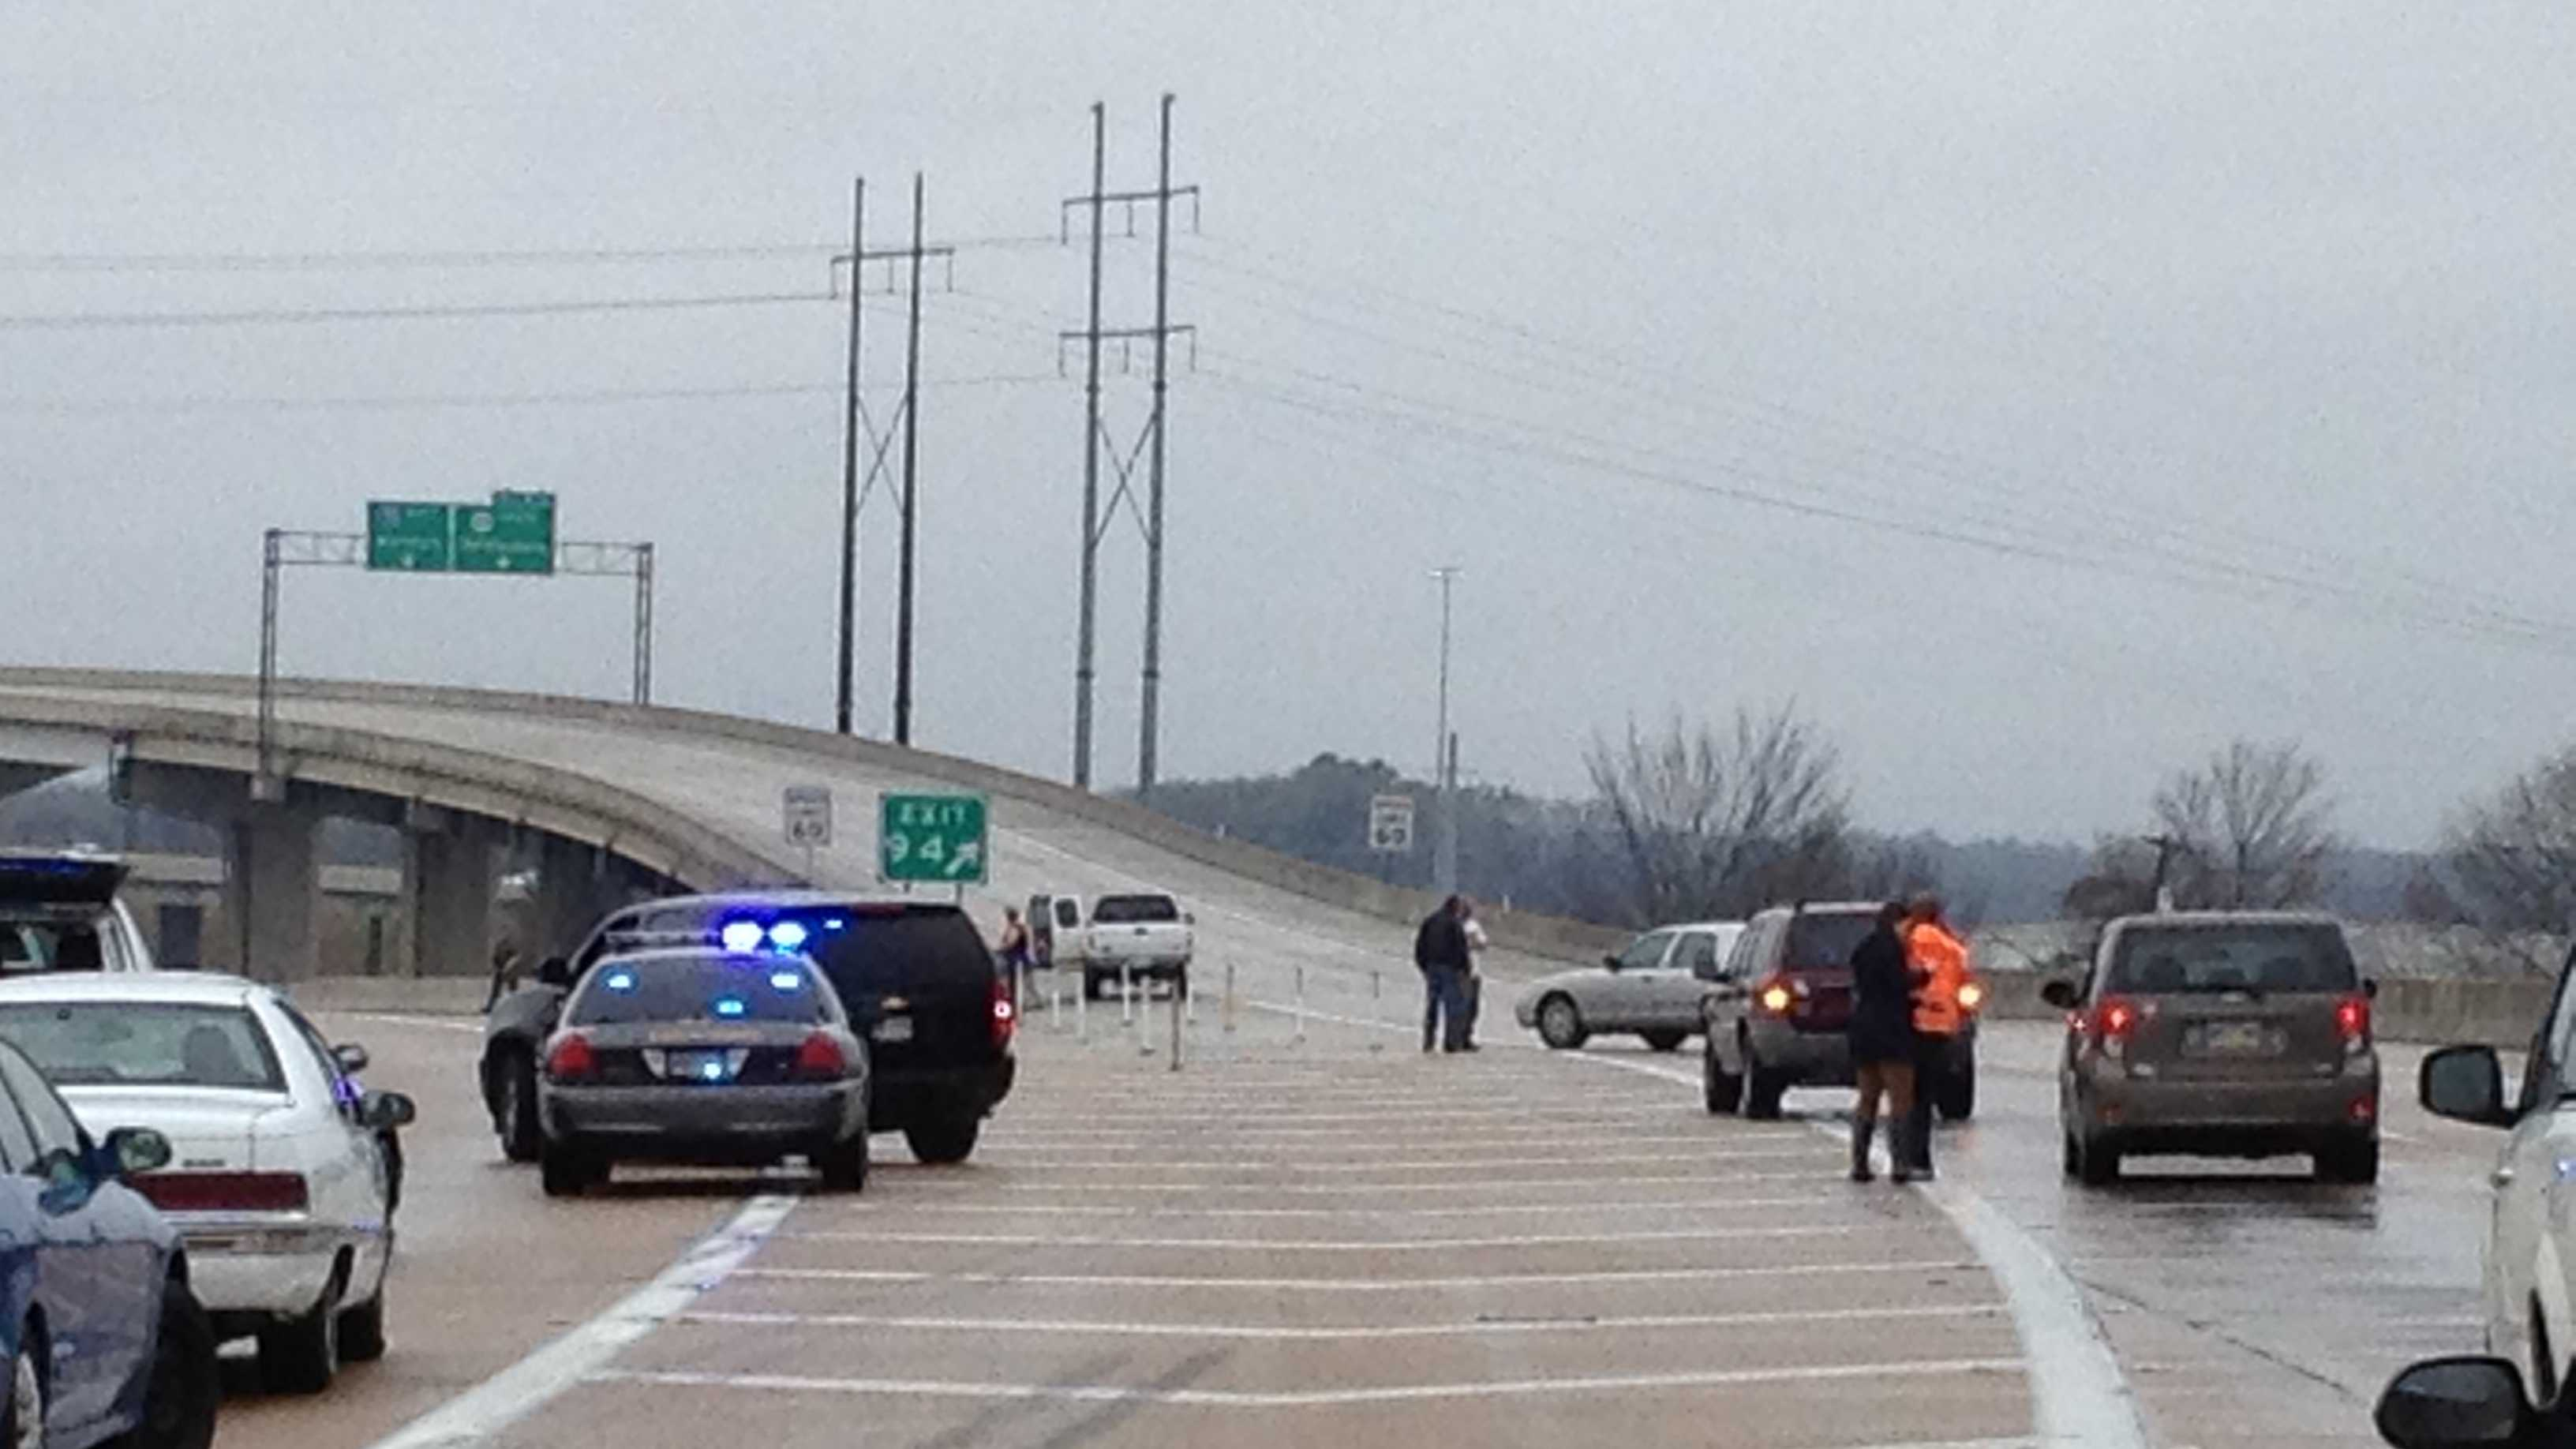 16 WAPT viewer Gabe Shows took this photo of the scene on Interstate 55 at The Stack.